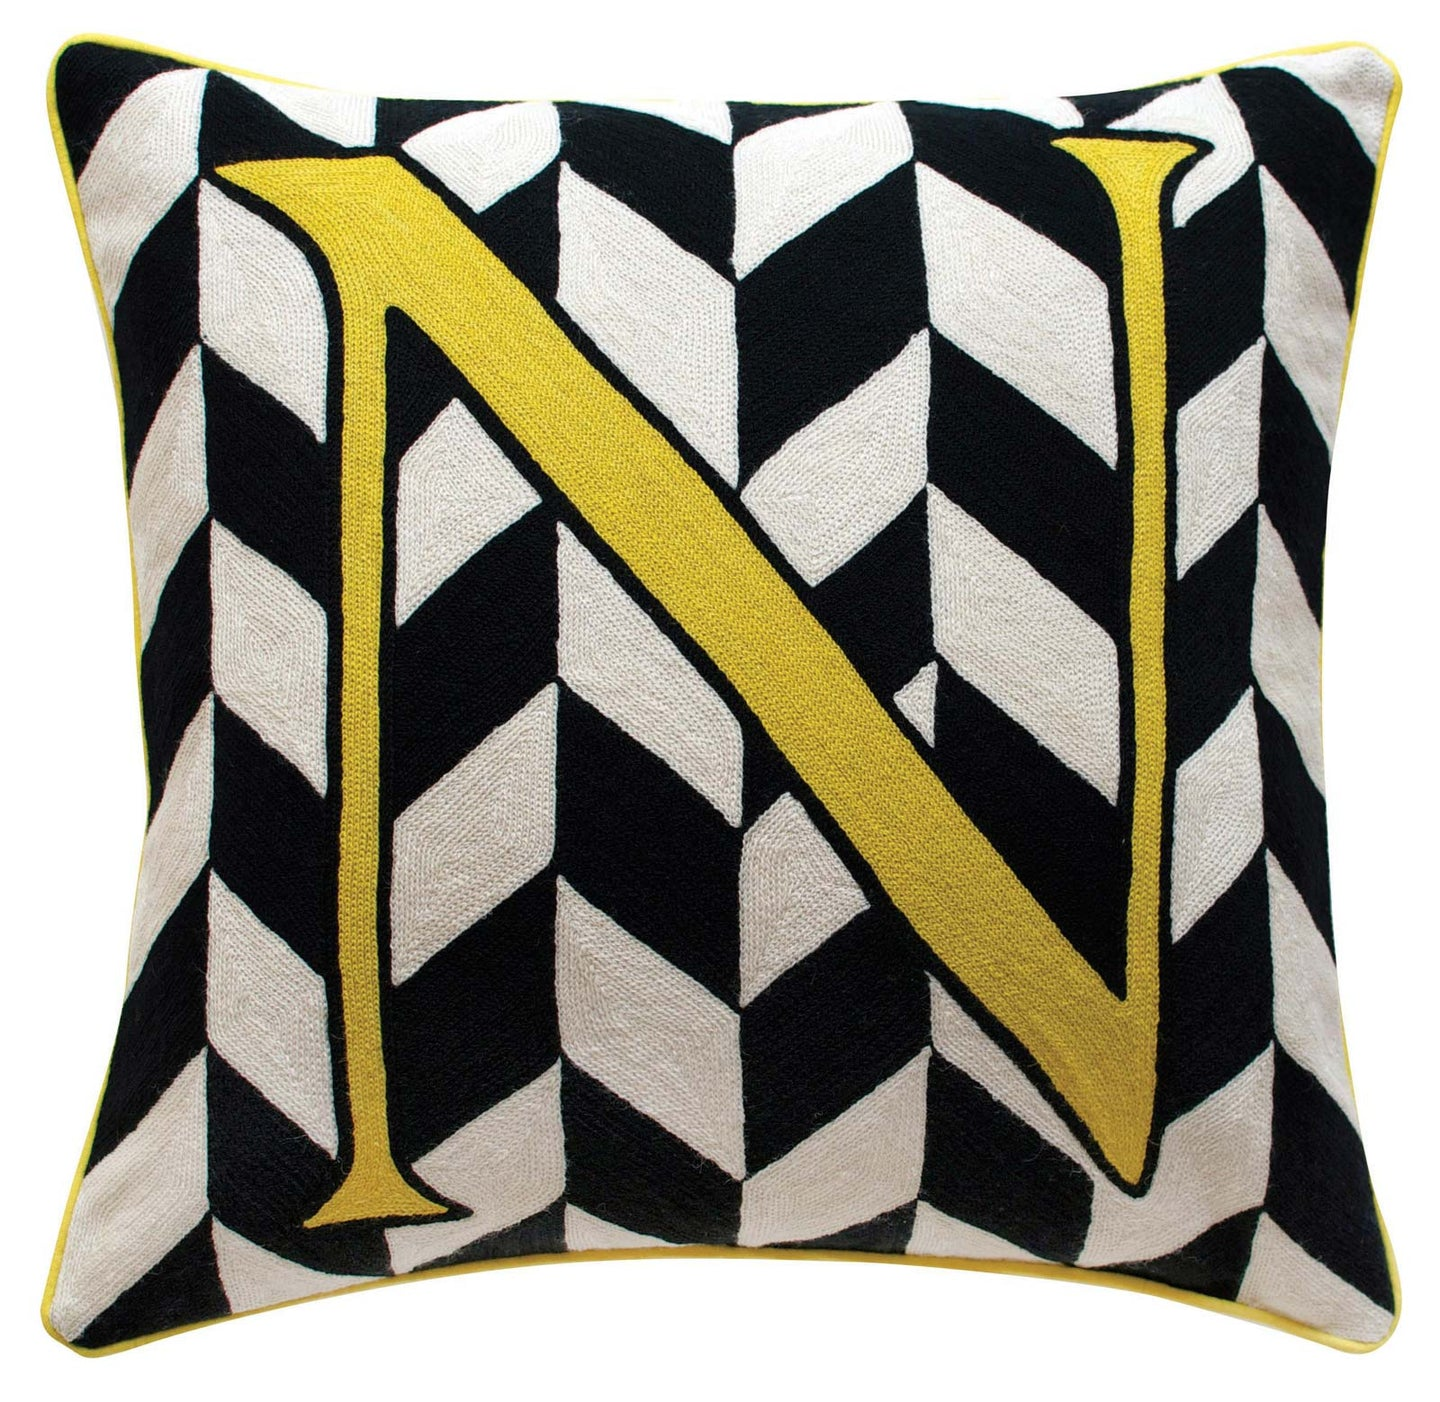 Alphabet N Cushion by Sue Timney